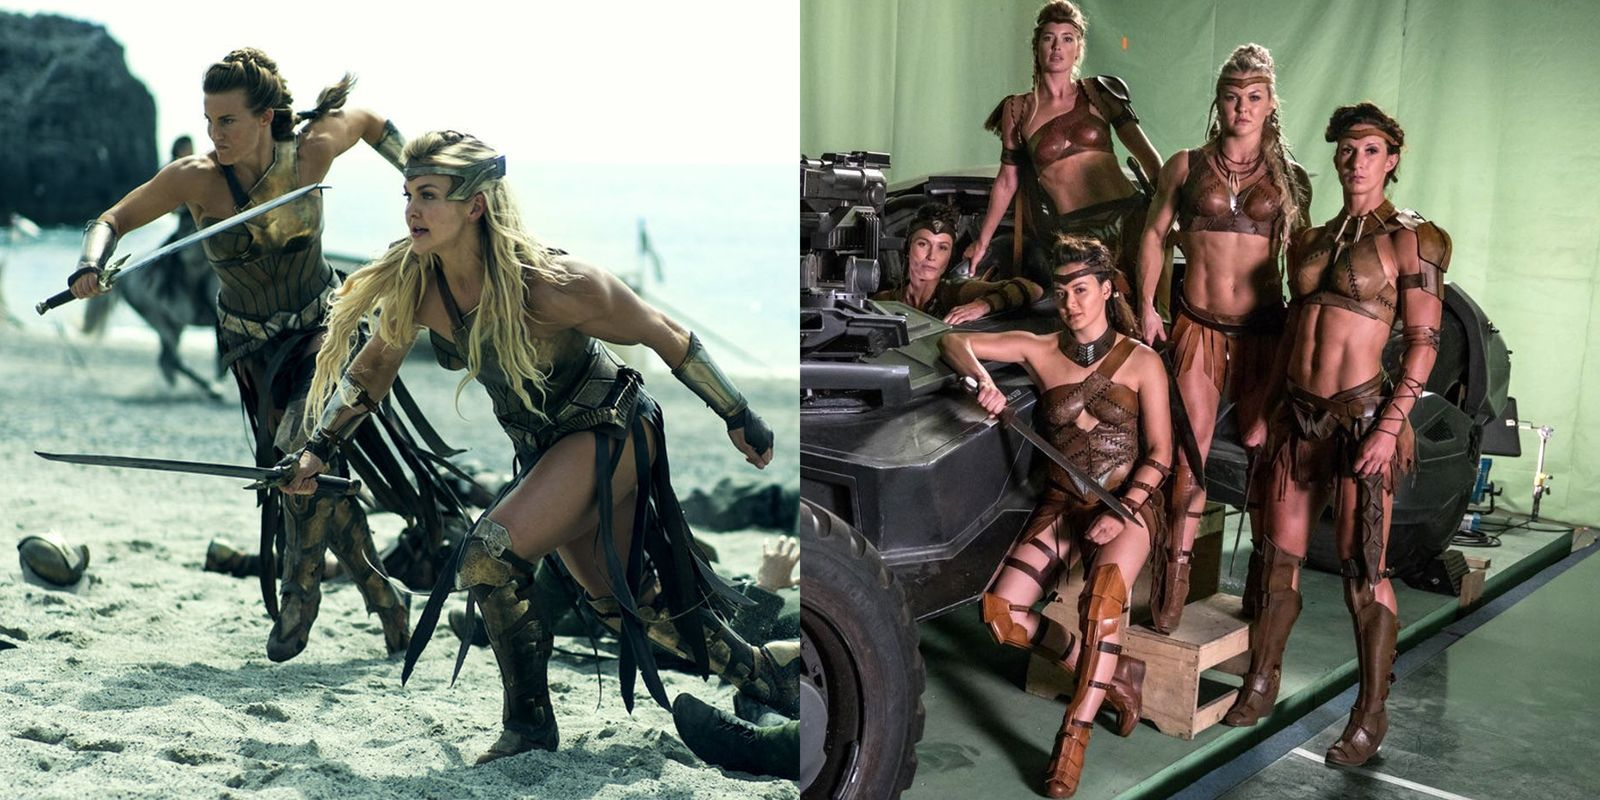 The Amazons Are Wearing Bikinis in 'Justice League' and People Are Furious